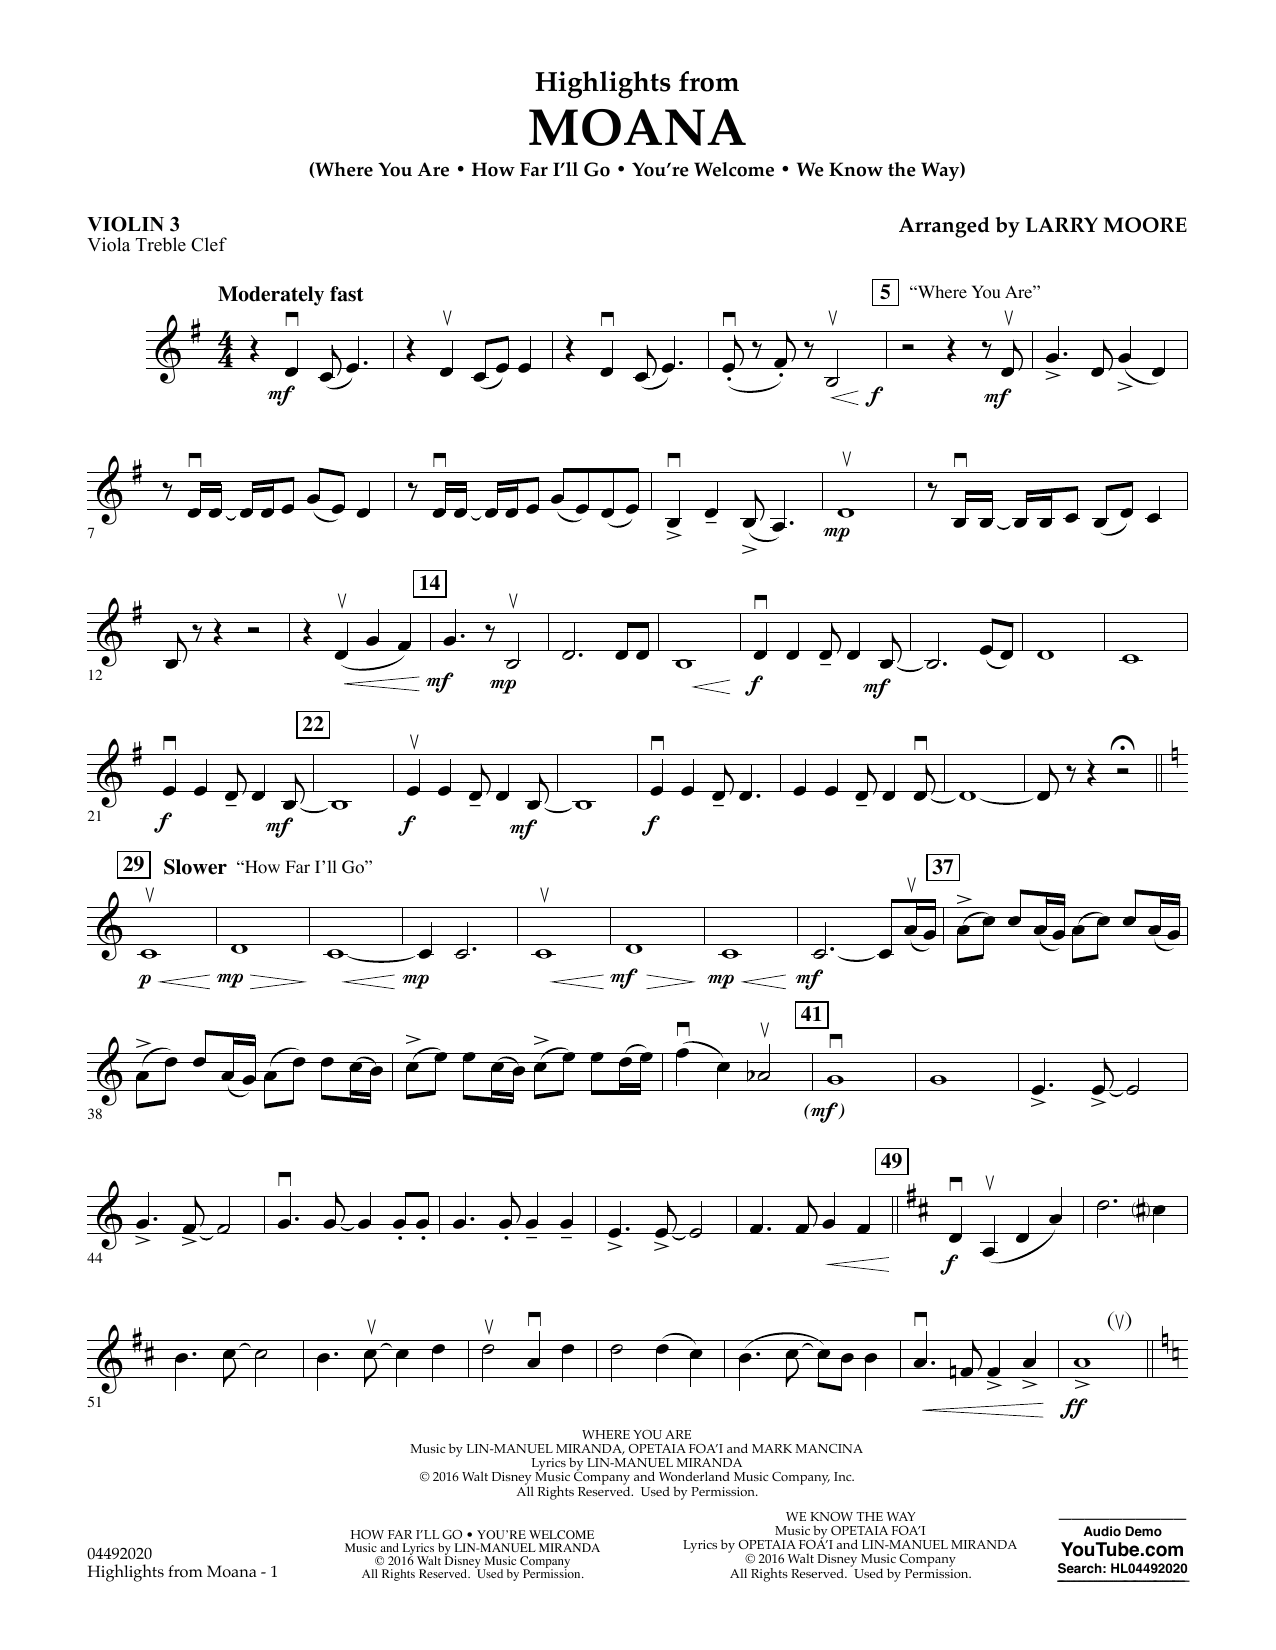 Larry Moore Highlights from Moana - Violin 3 (Viola Treble Clef) sheet music notes and chords. Download Printable PDF.